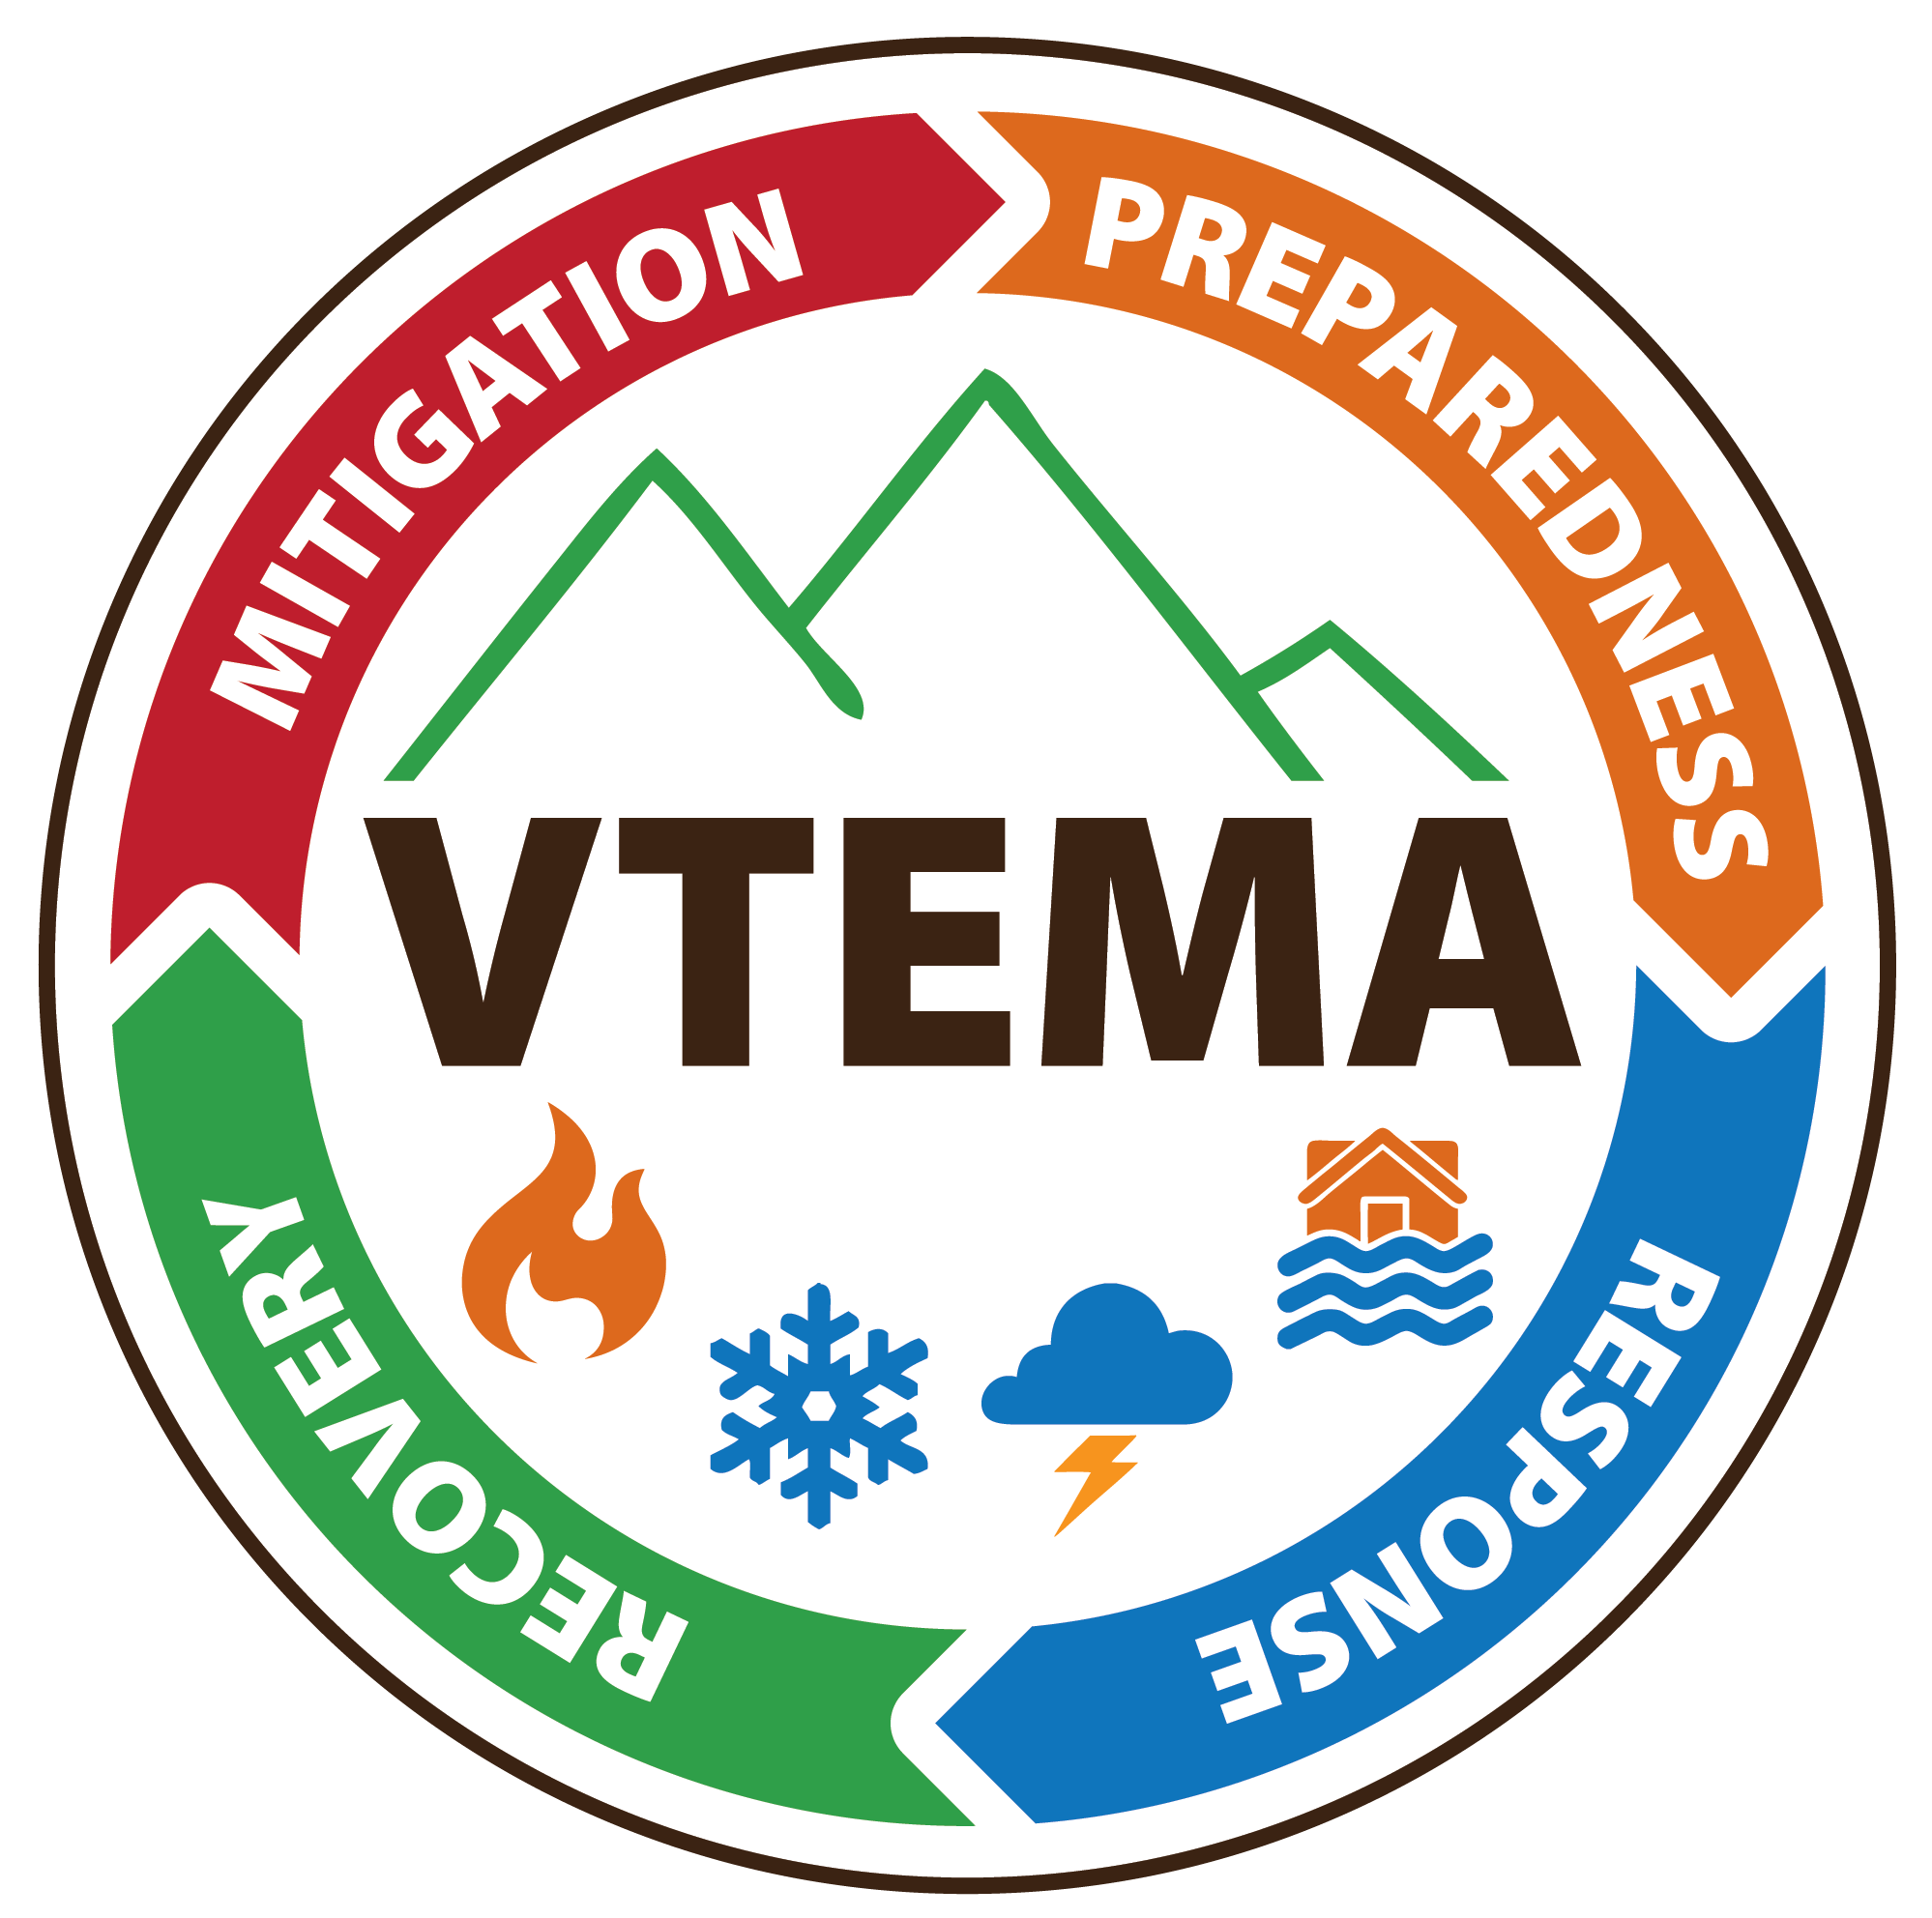 Vermont Emergency Management Association